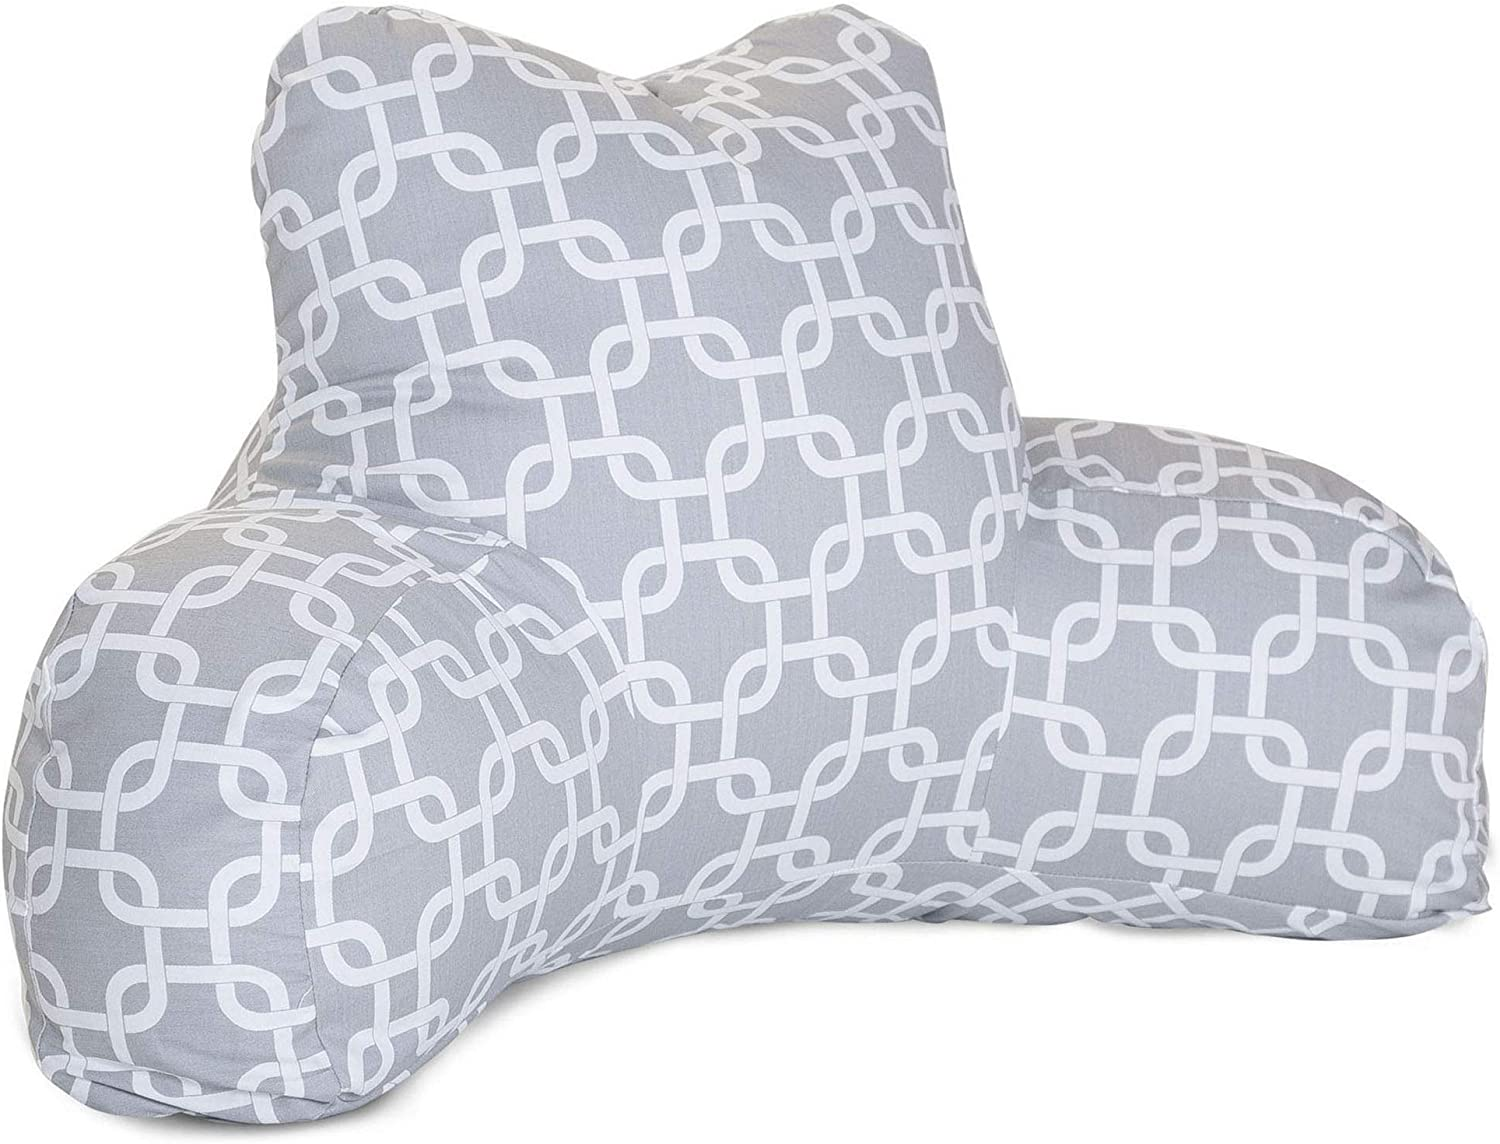 Majestic Home Goods Links Reading Pillow Gray